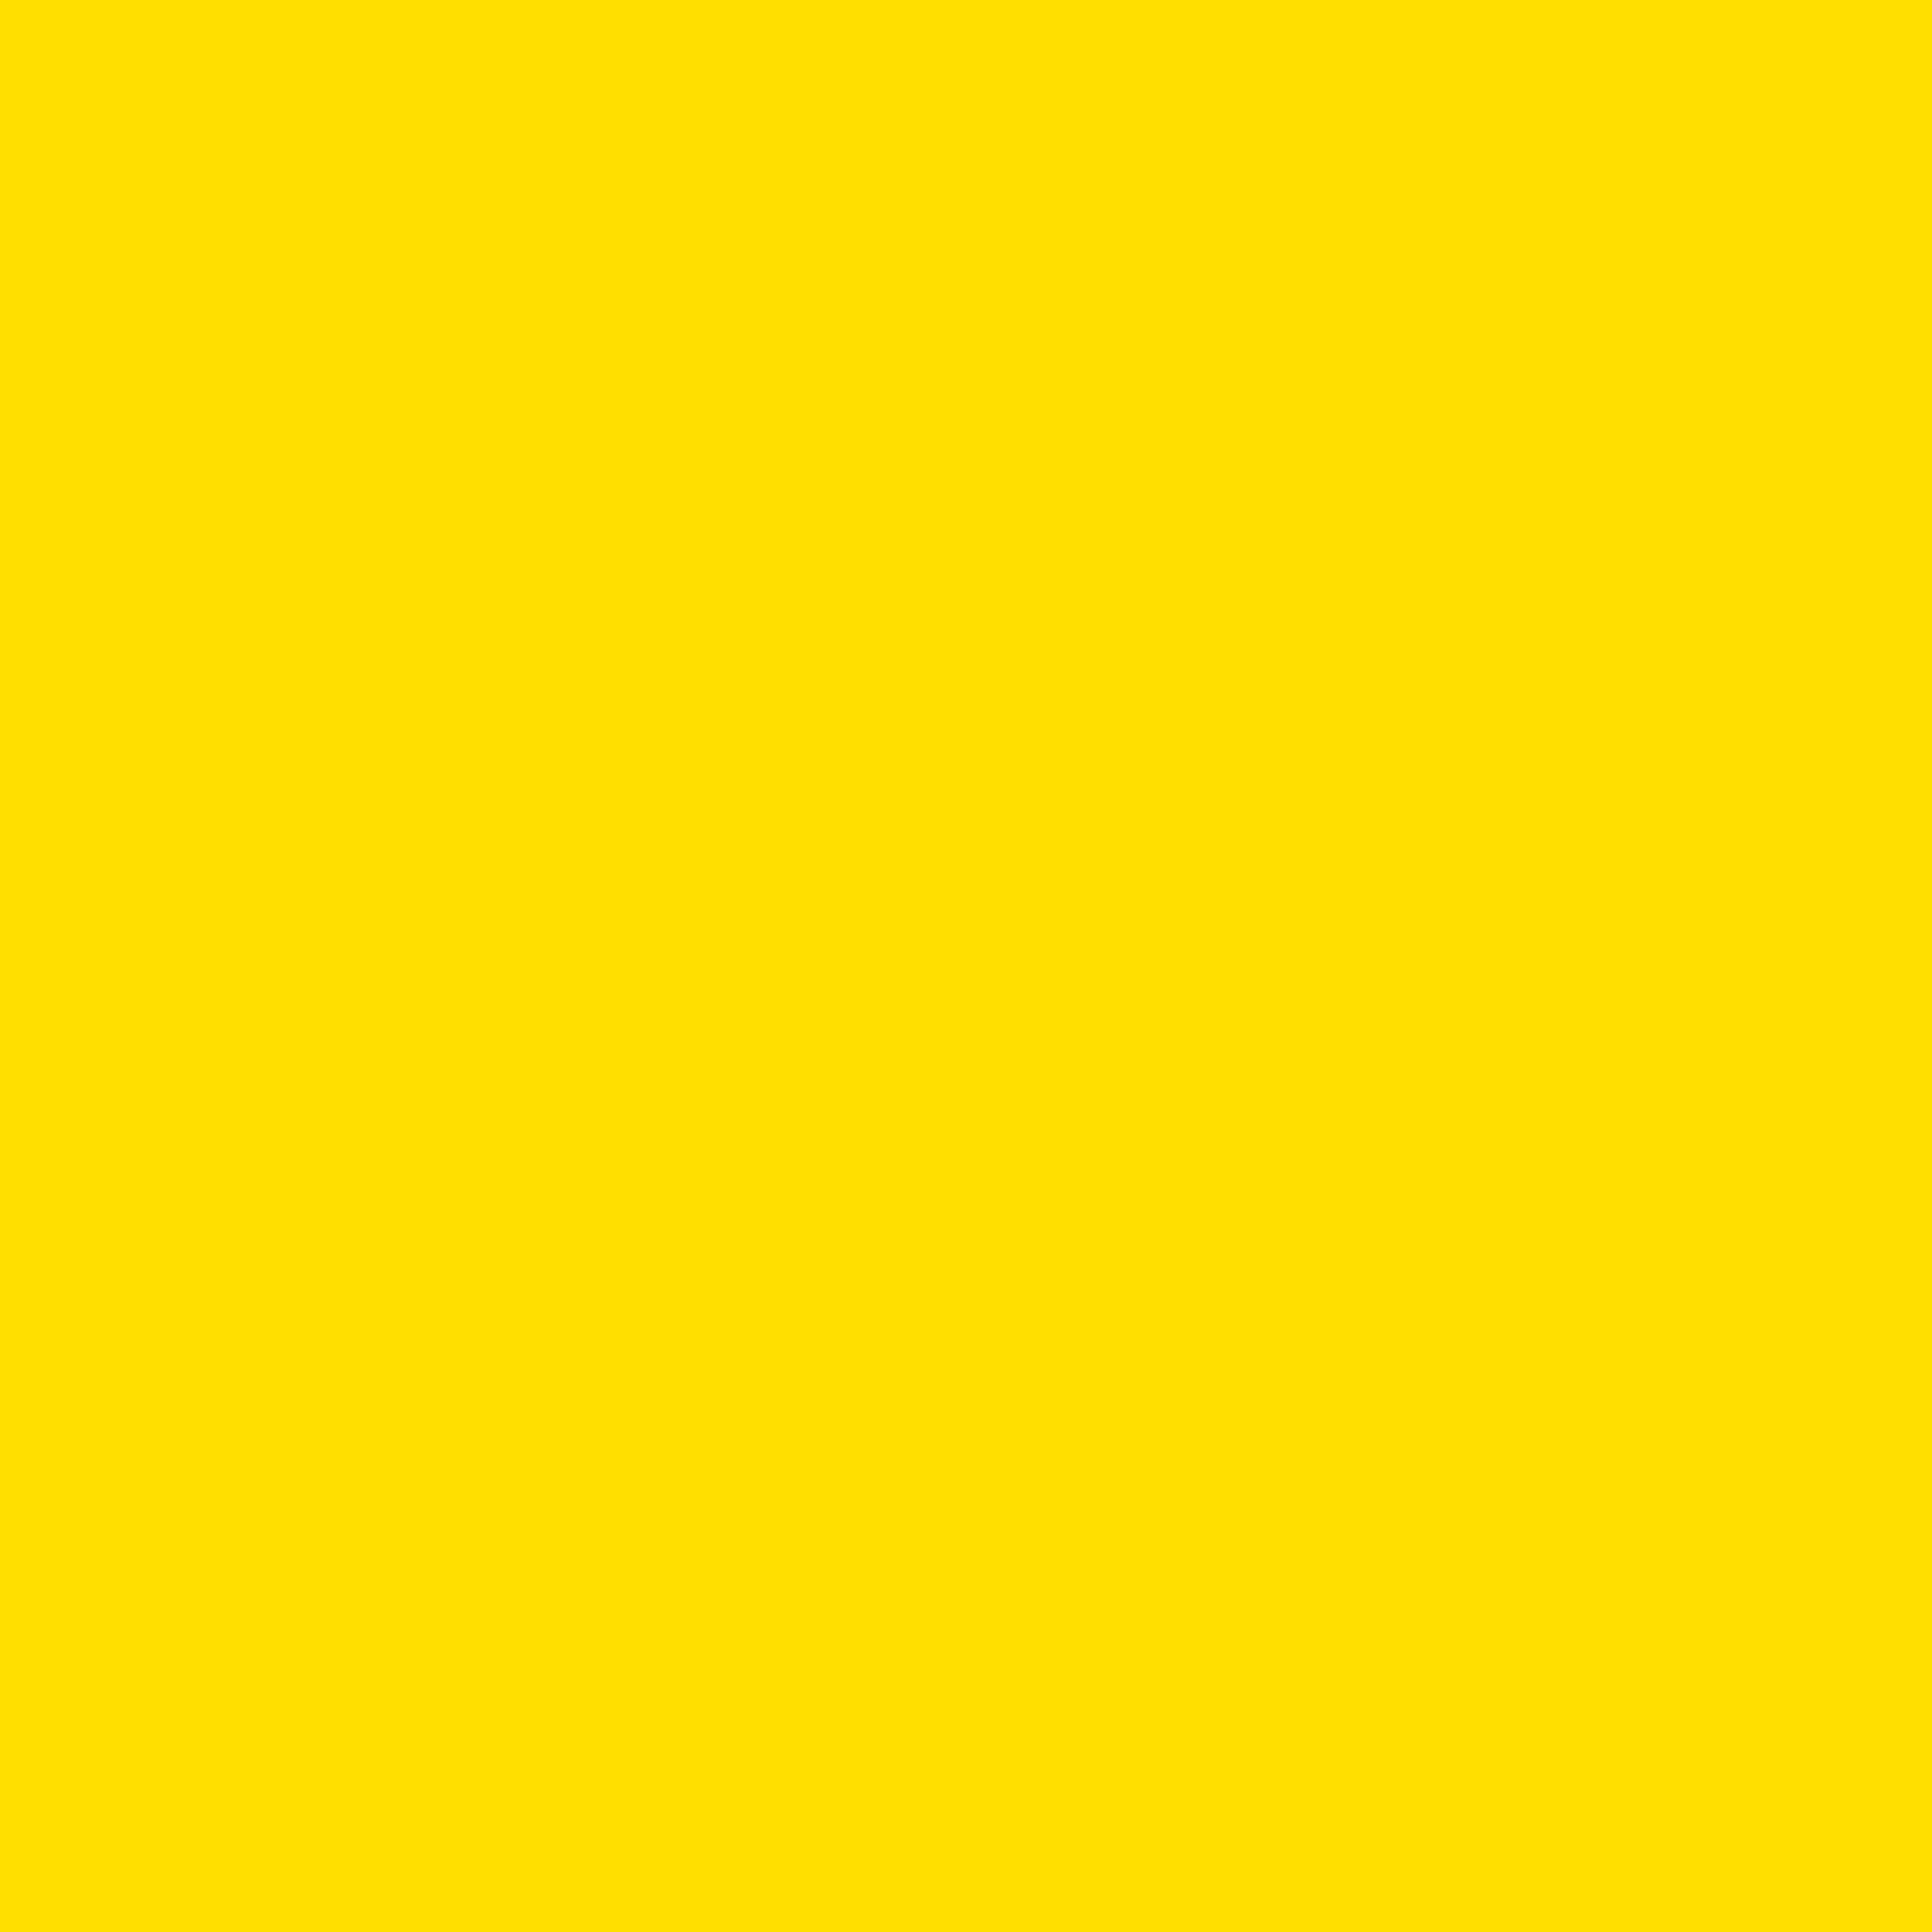 3600x3600 Golden Yellow Solid Color Background